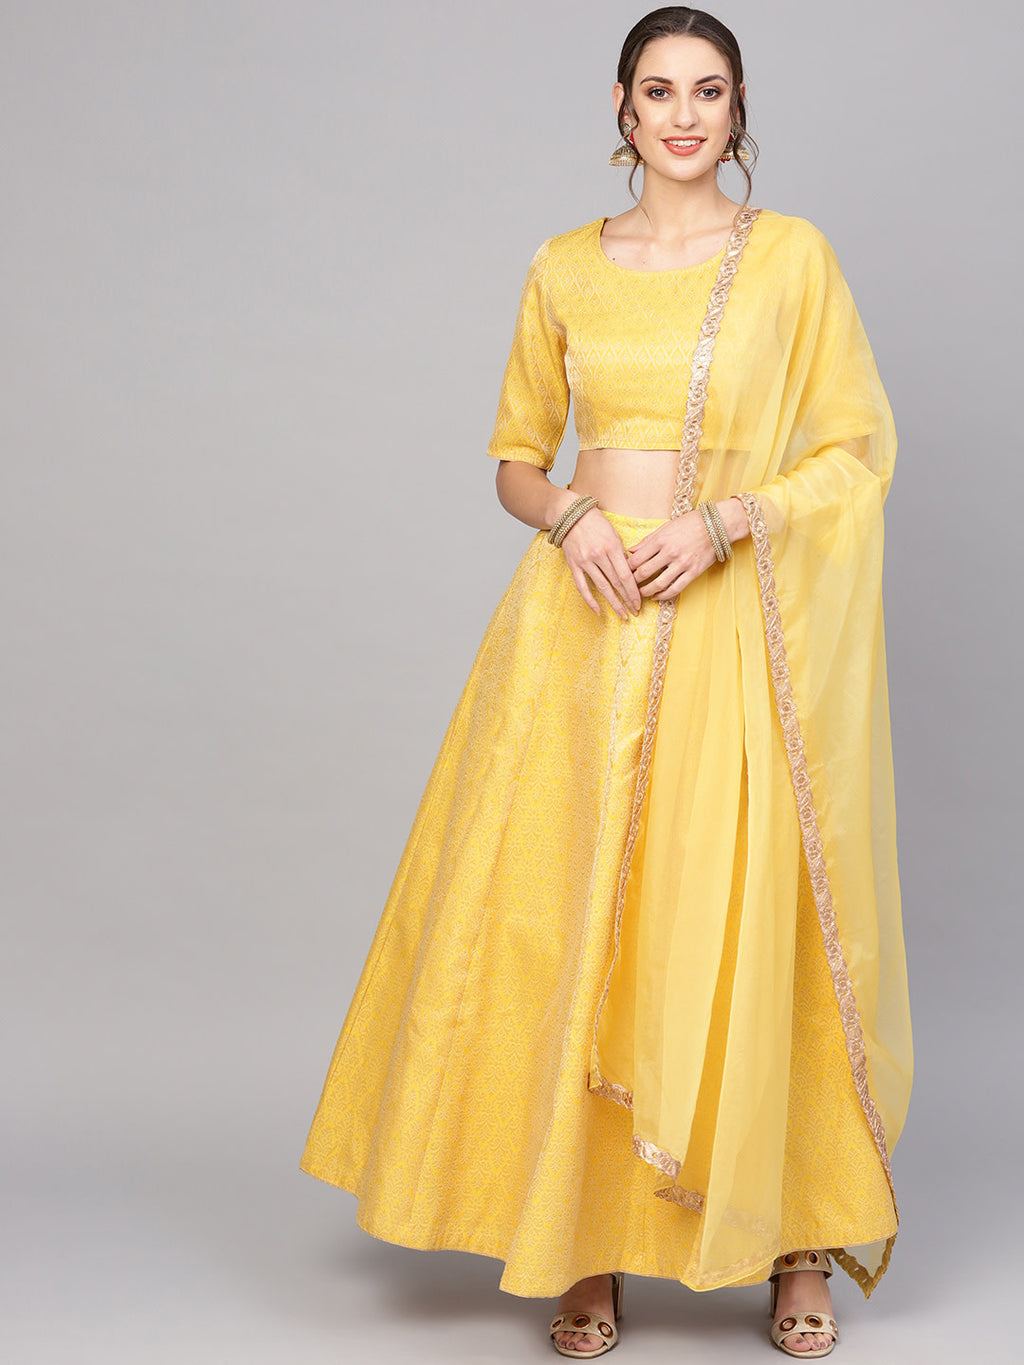 Yellow & Golden Woven Design Brocade Ready to Wear Lehenga with Blouse